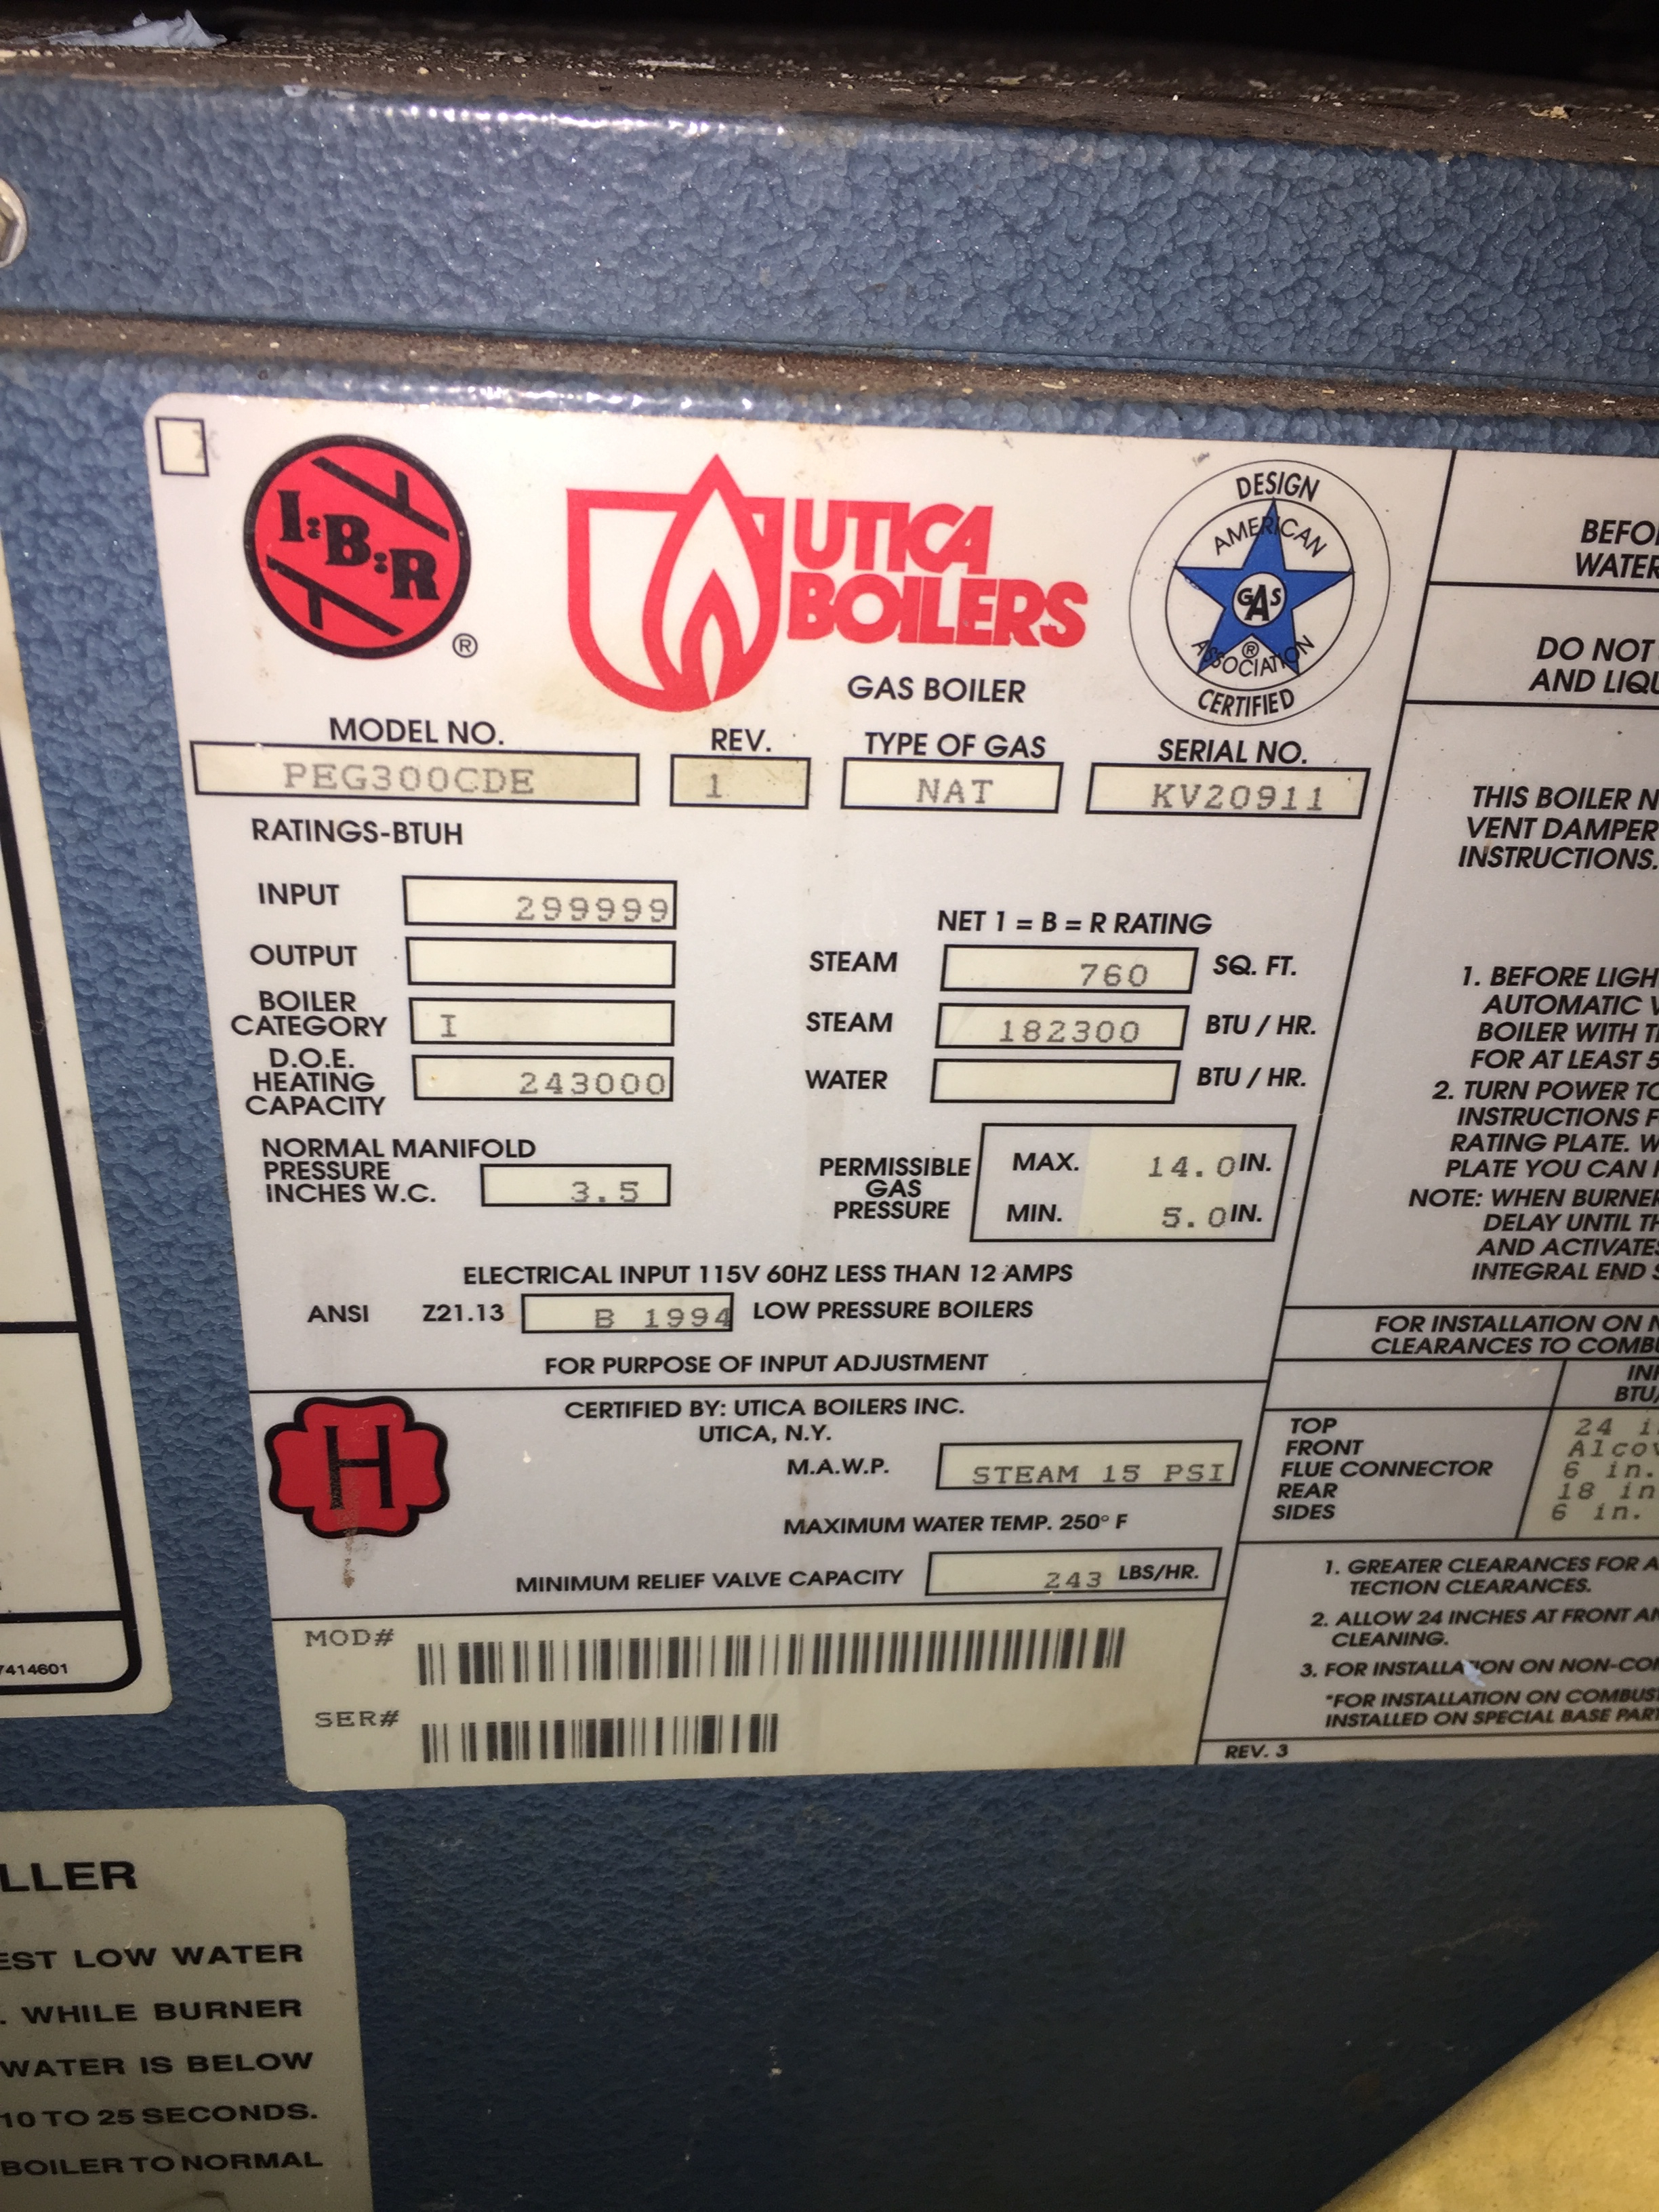 Steam Boiler: Rusted, leaky water gauge + corrosion under top panel on steam boiler piping schematic, furnace schematic diagram, rice cooker schematic diagram, hvac schematic diagram, motor schematic diagram, refrigeration schematic diagram, heat exchanger schematic diagram, compressor schematic diagram, heater schematic diagram, water softener schematic diagram, electrical schematic diagram, piping schematic diagram, turbine schematic diagram, filter schematic diagram, generator schematic diagram, grinder schematic diagram,